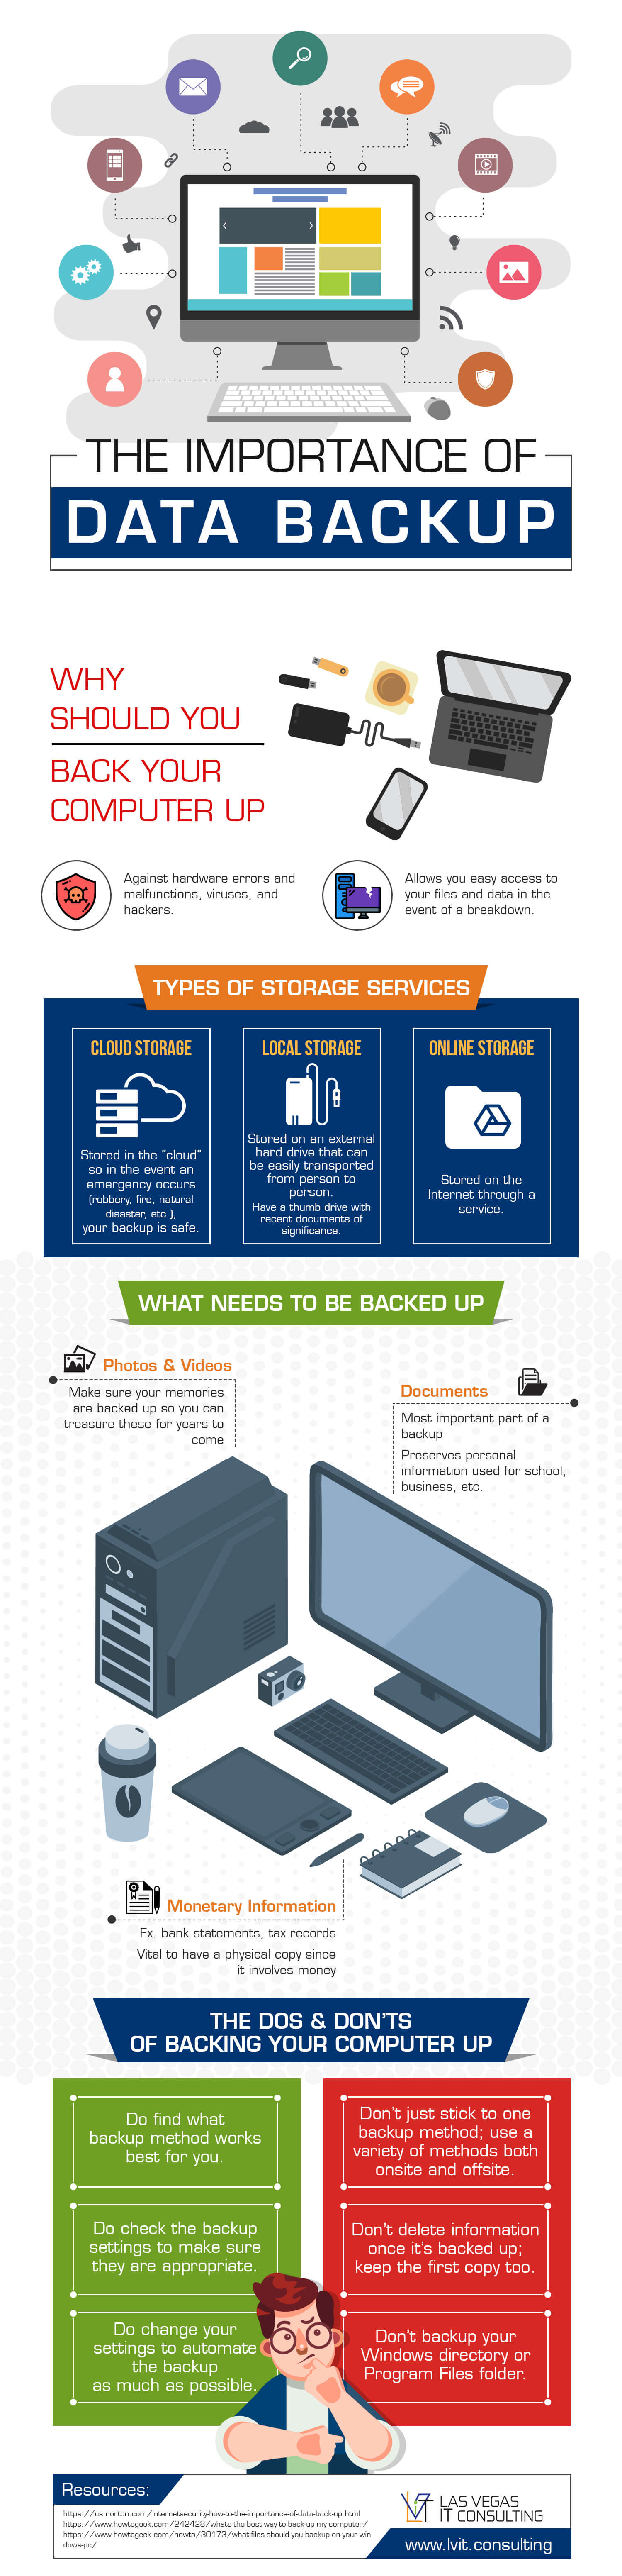 Las Vegas IT Consulting highlights the importance of data backup